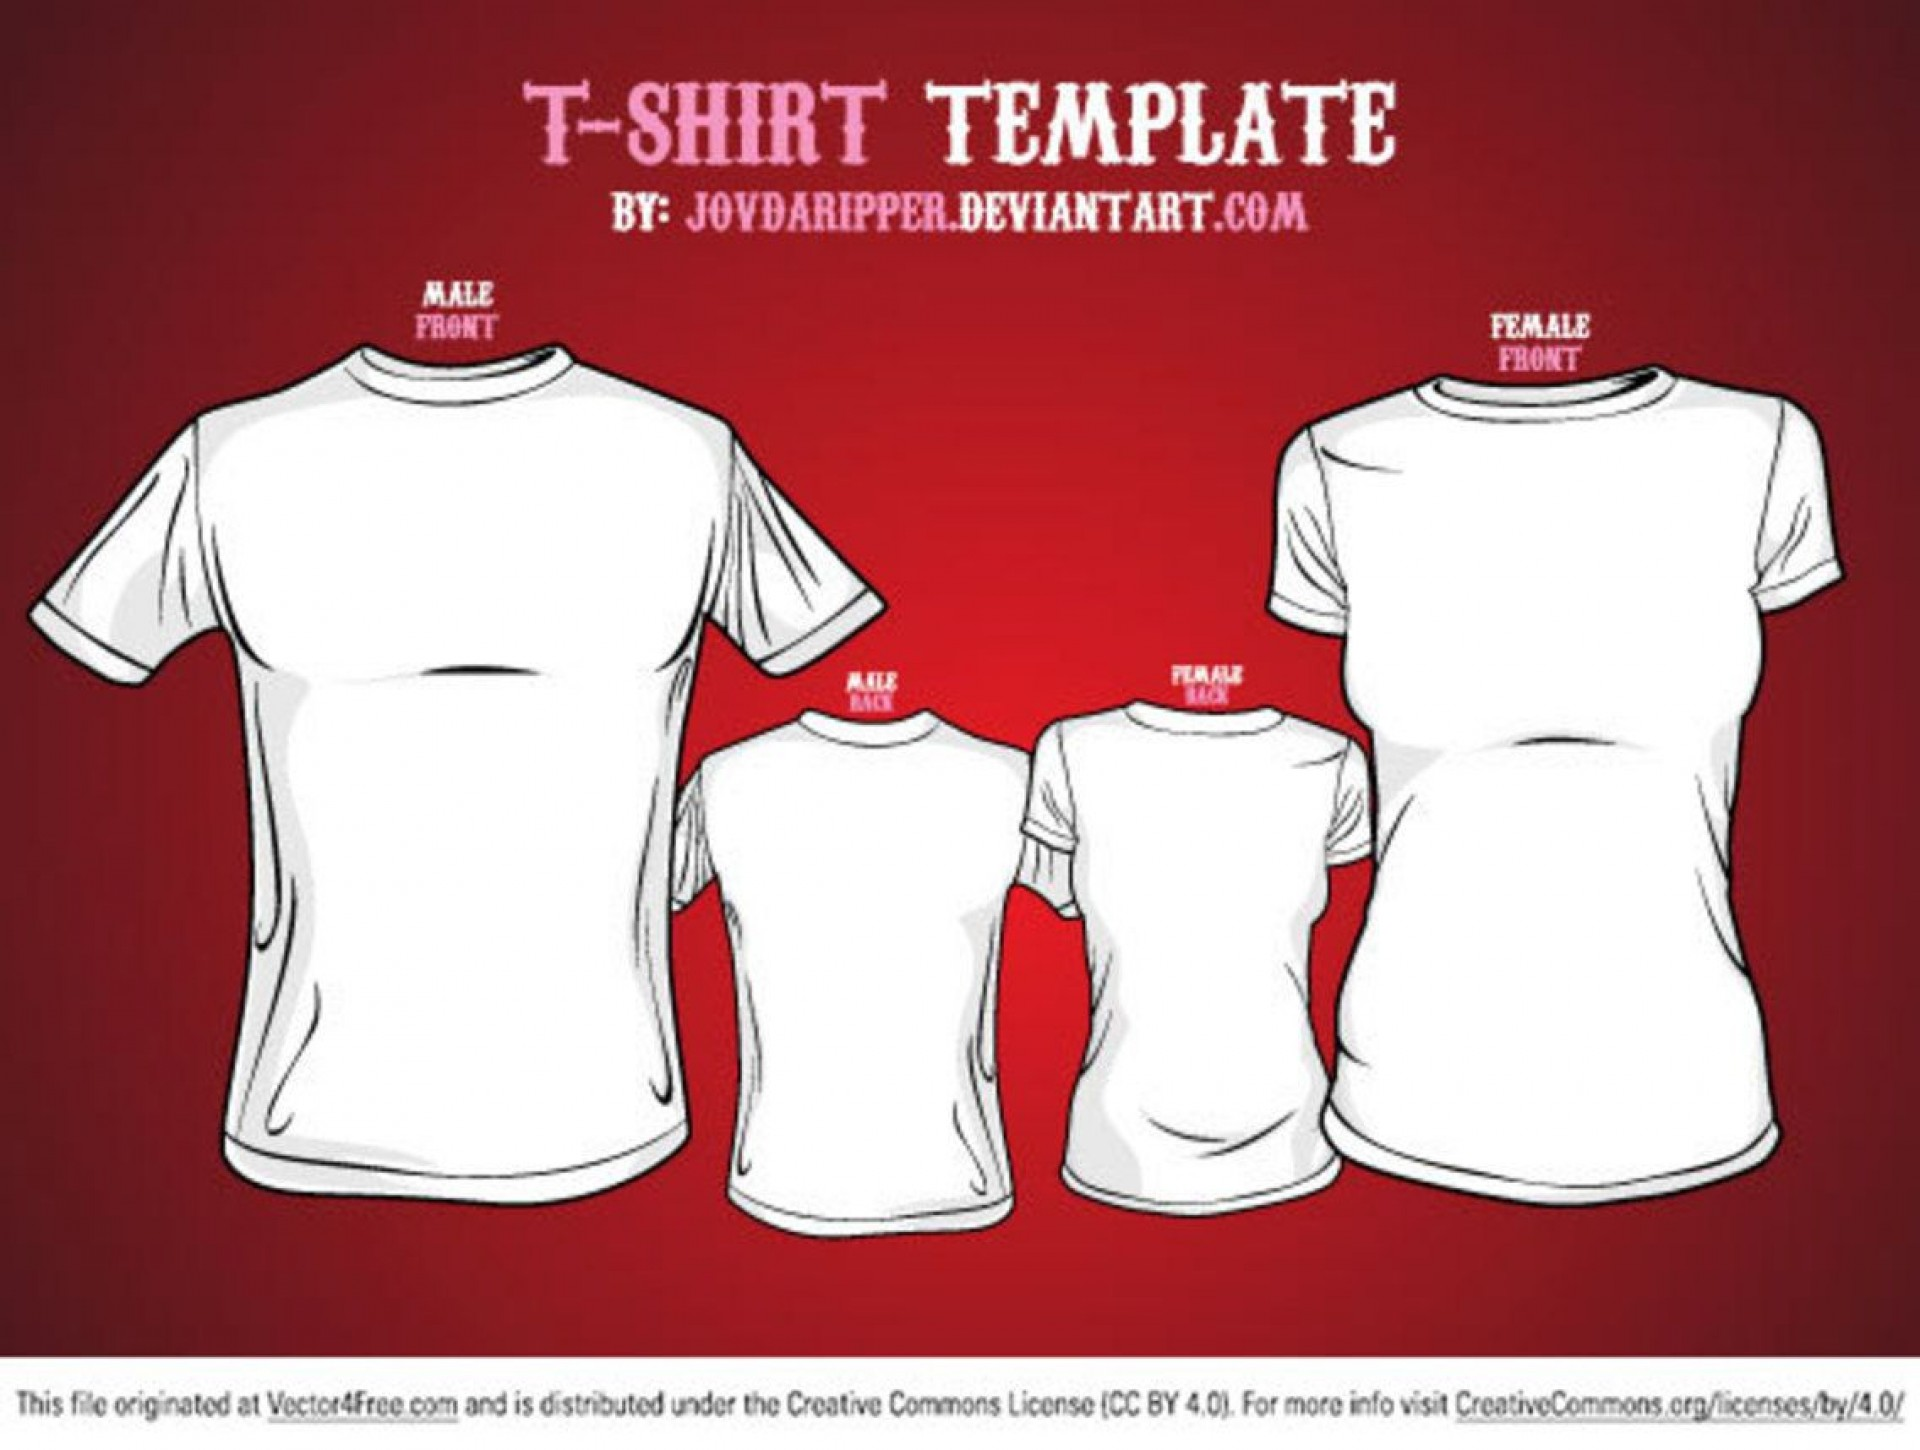 009 Top T Shirt Template Free Image  T-shirt Mockup Download Coreldraw Vector1920